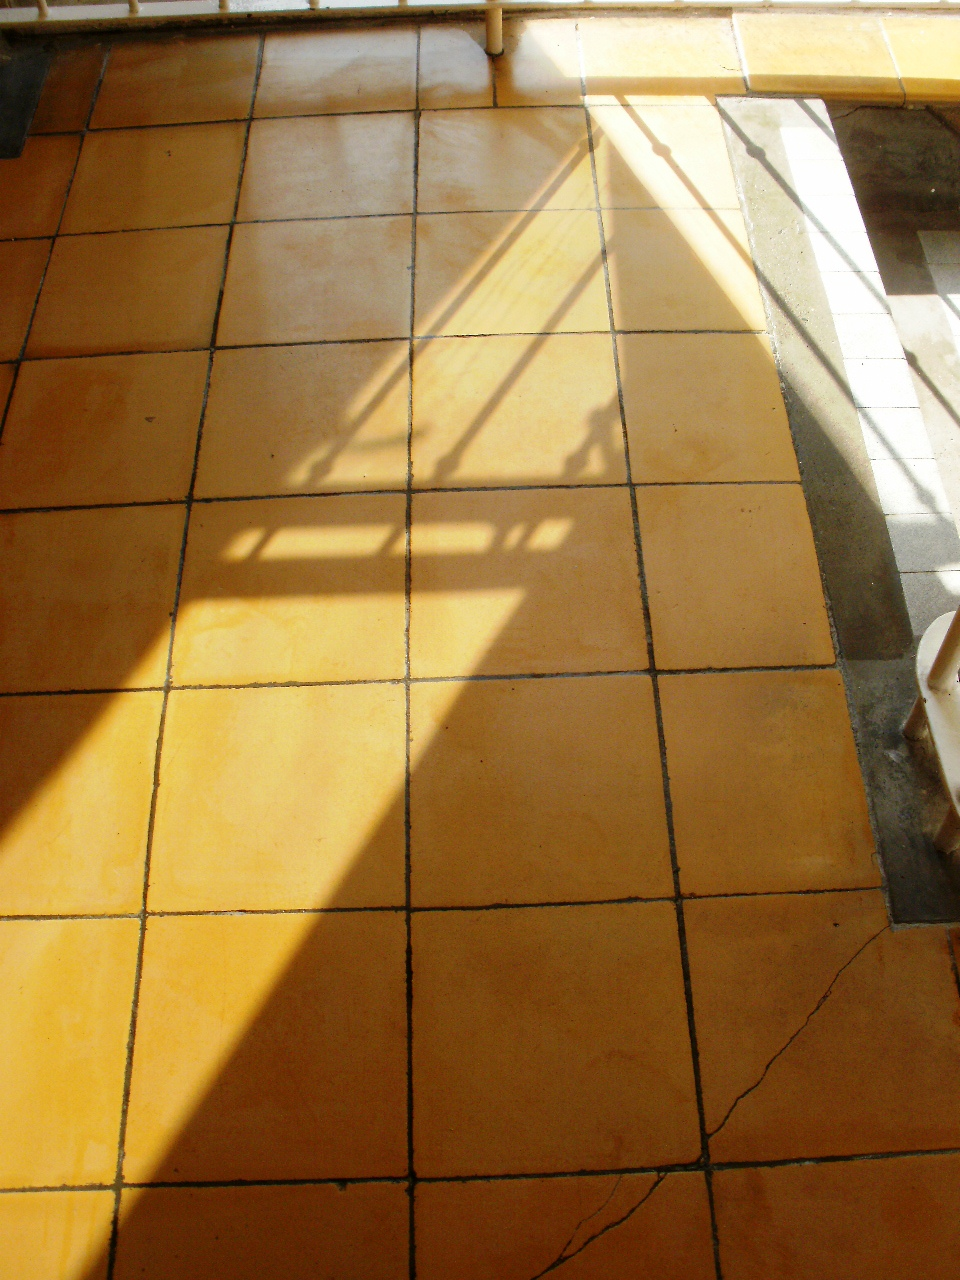 Cleaning Old Ceramic Tiles Stone Cleaning And Polishing